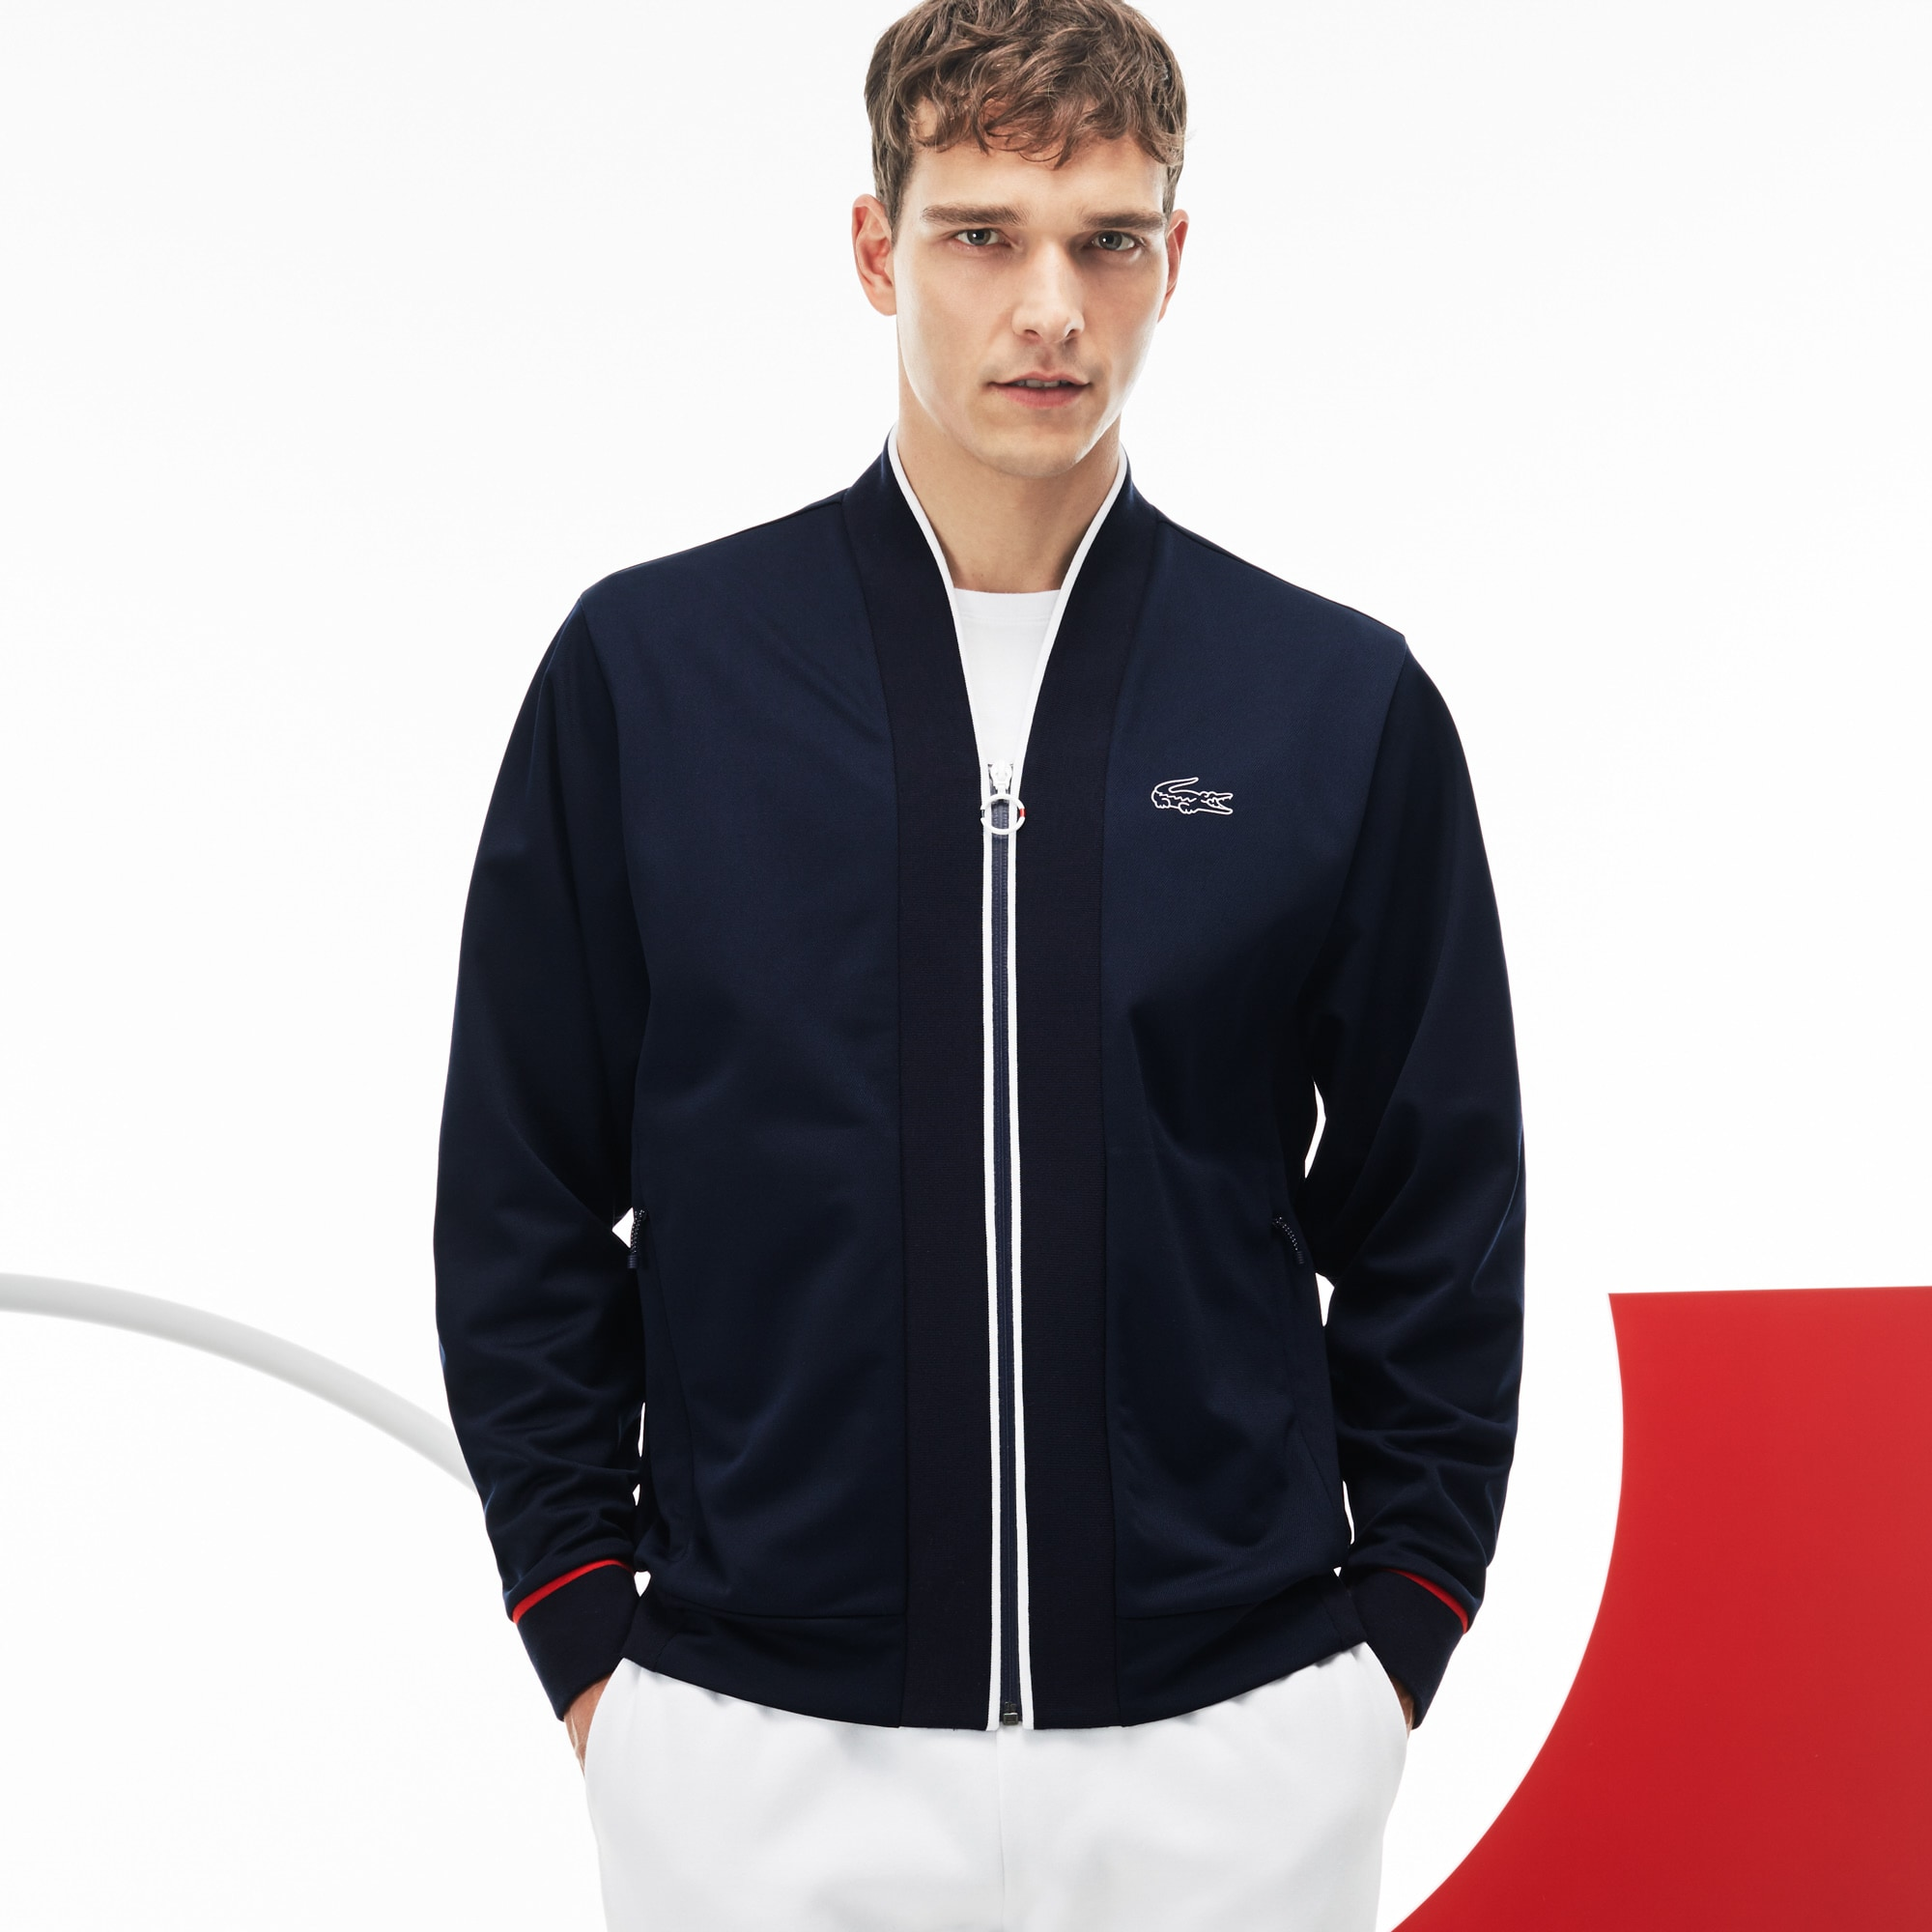 Men's  French Sporting Spirit Edition Tech Piqué Zip Sweatshirt